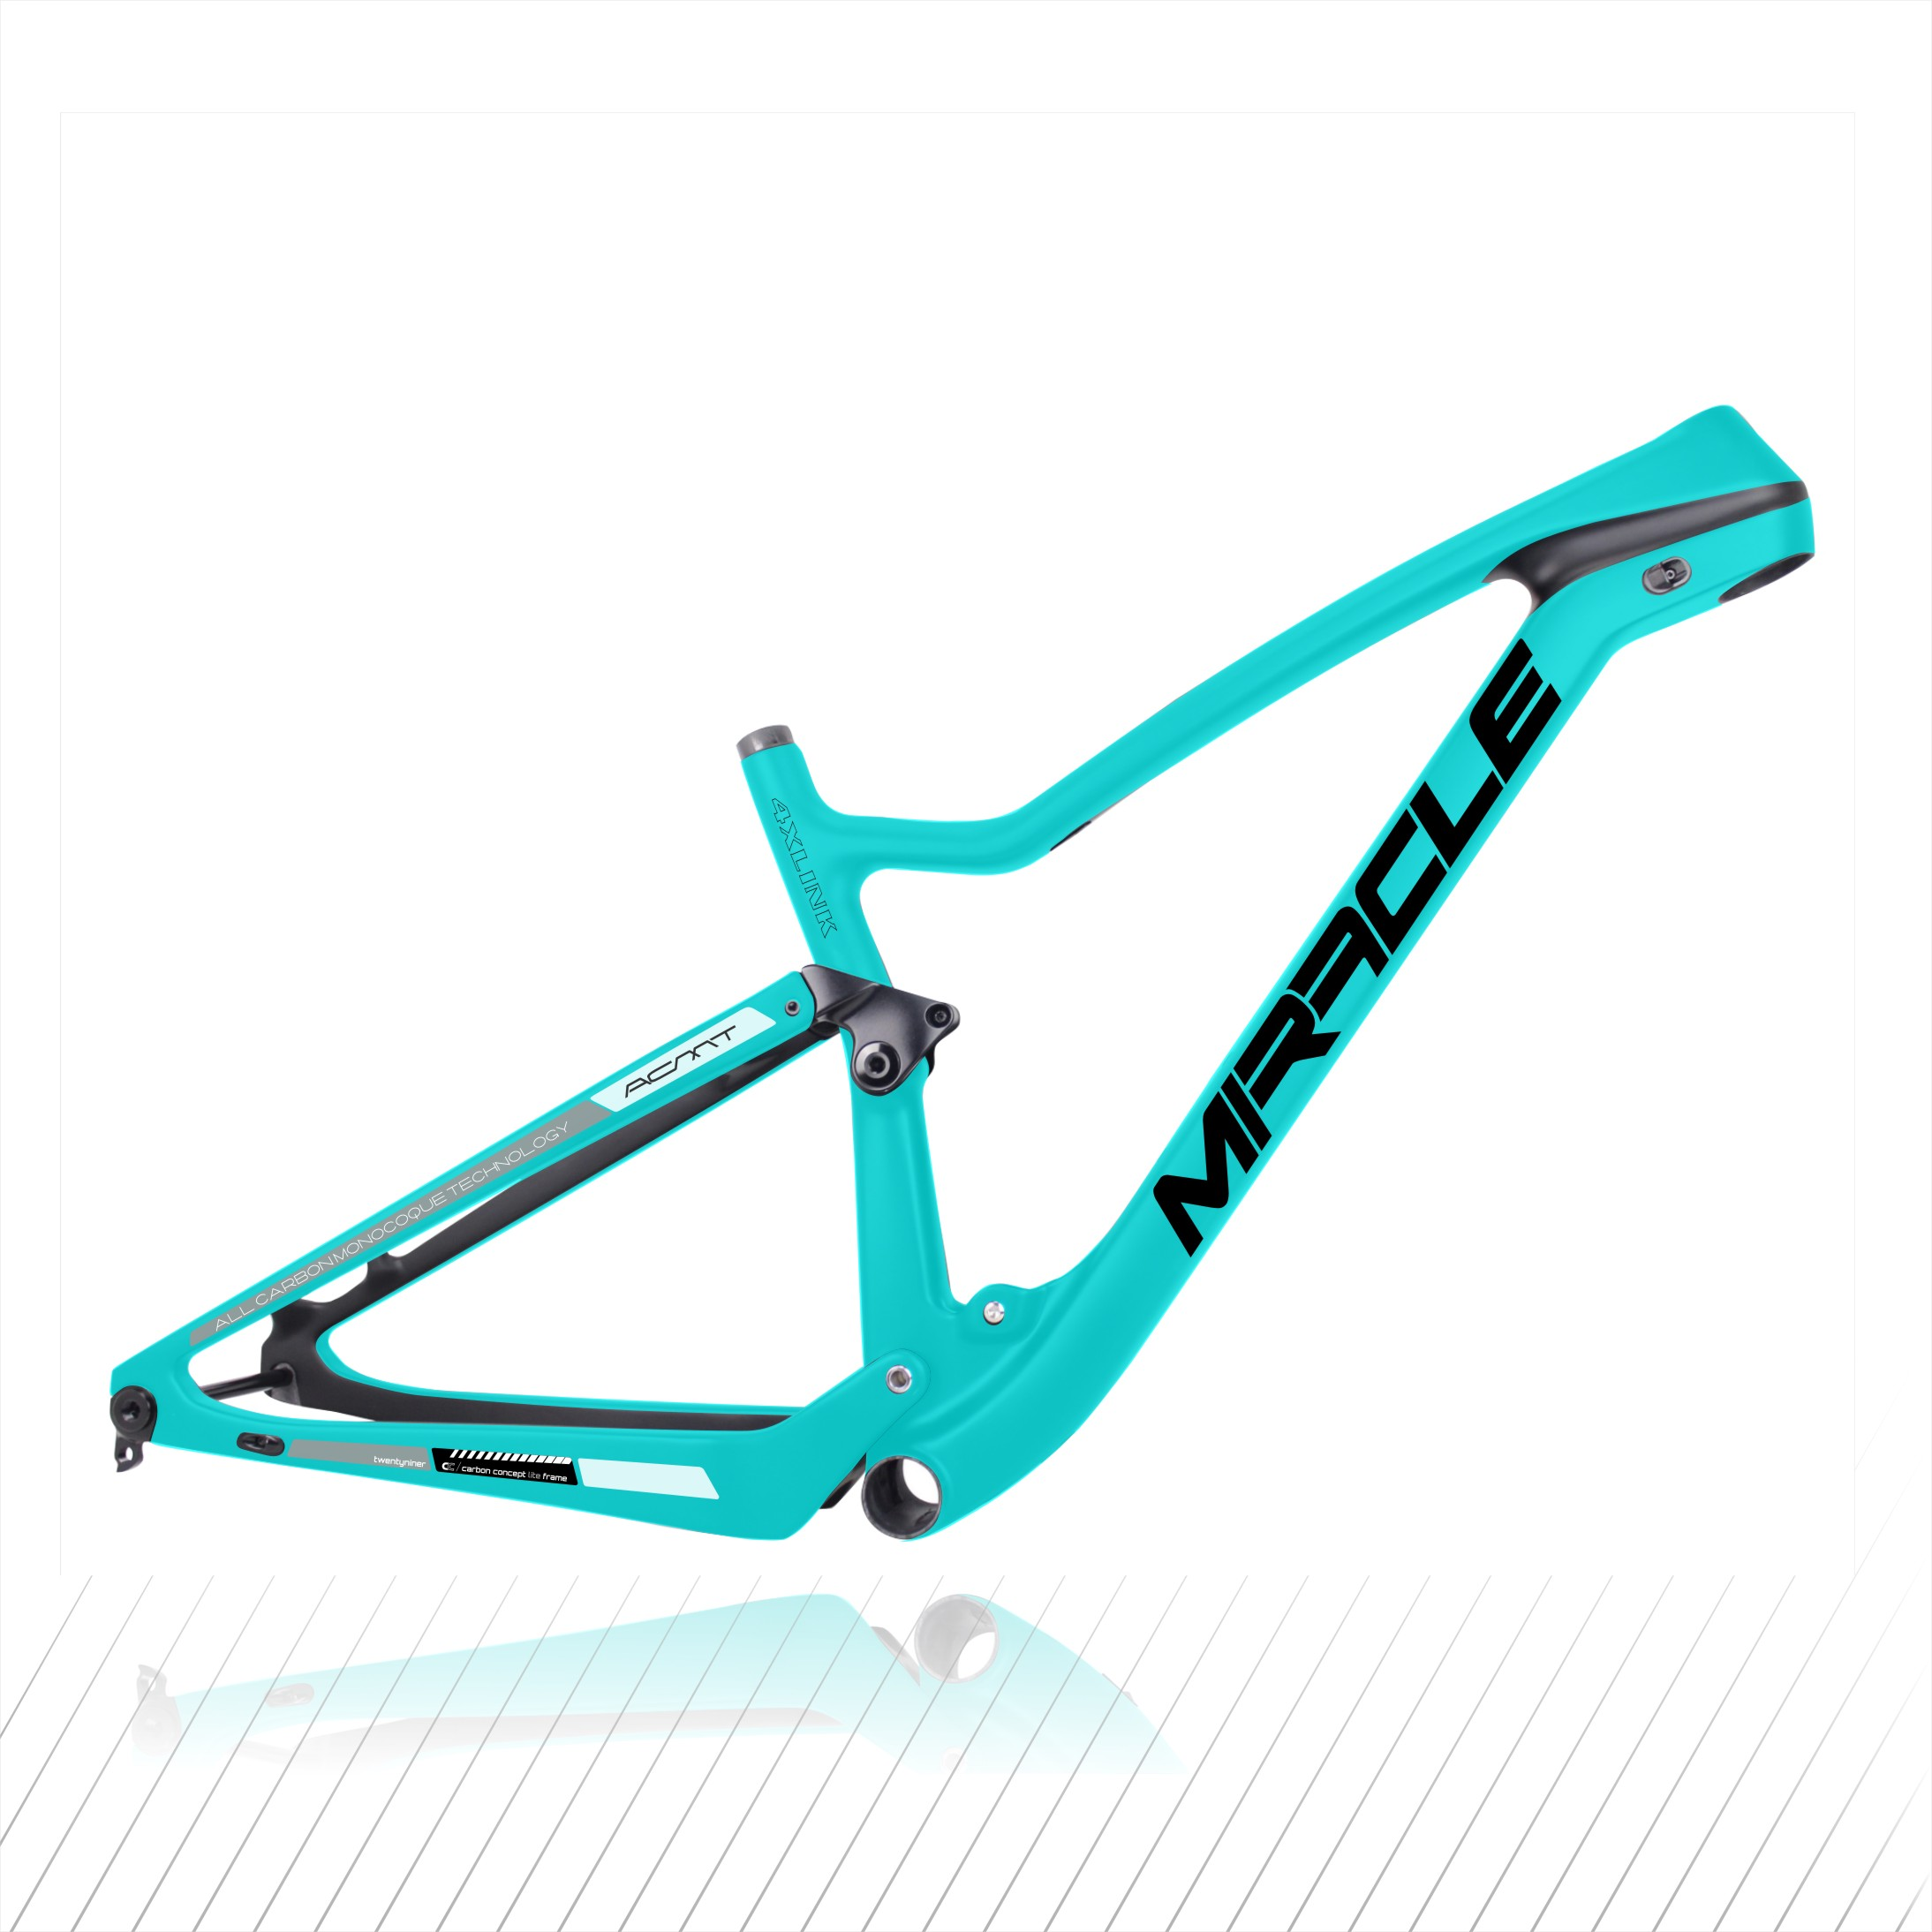 2020 New Cross Country bicicletas MTB XC 29er quadro de suspensão de carbono, 148*12MM impulso mountain bike de Carbono Quadro 29er